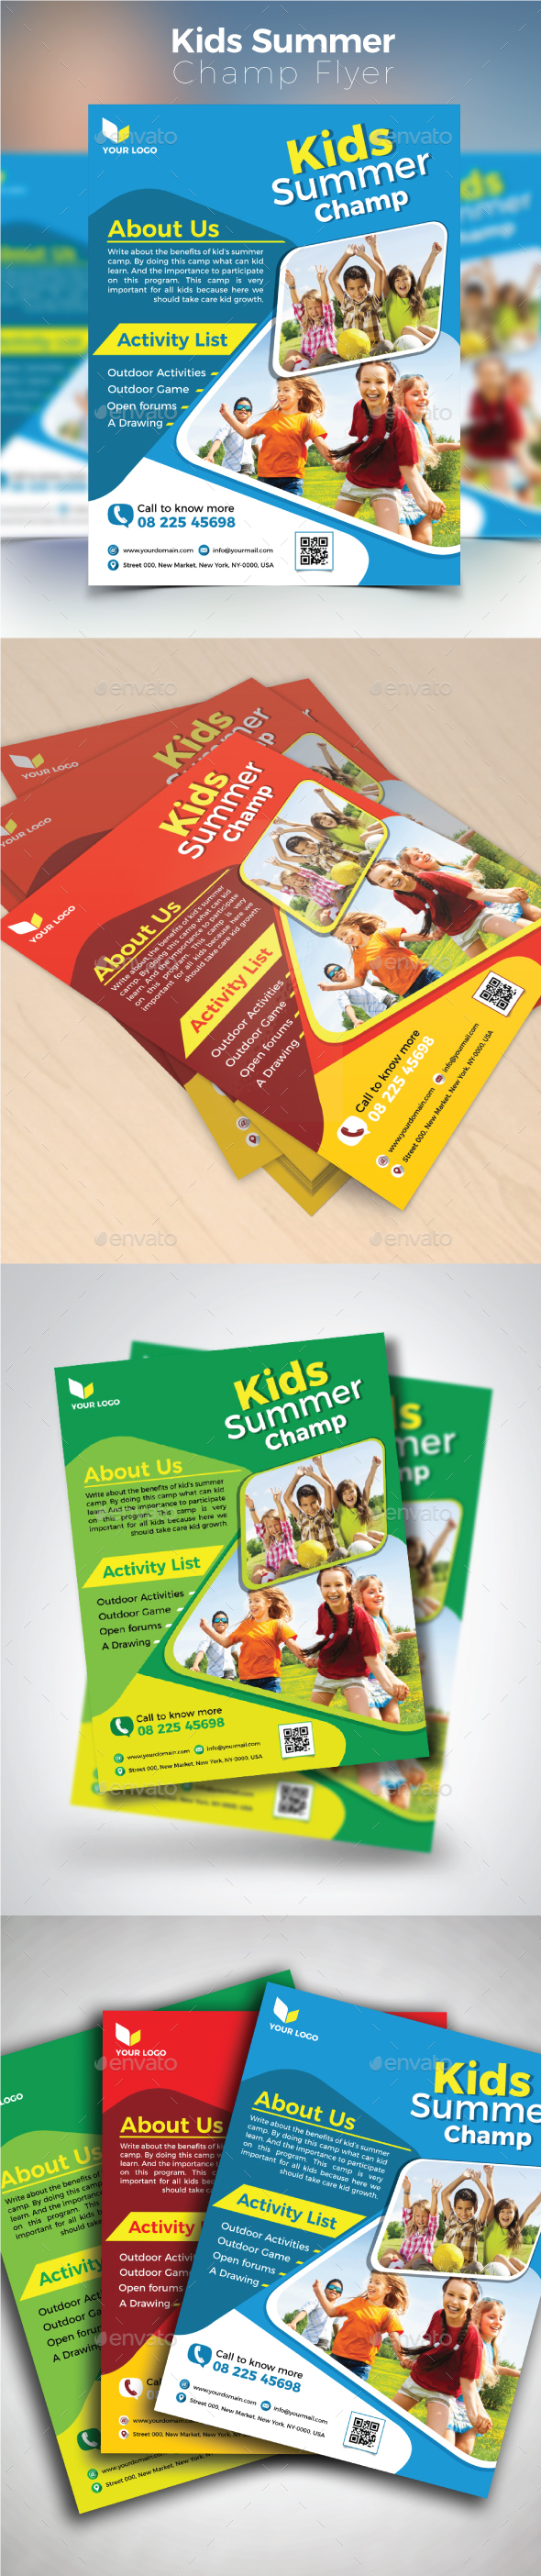 Kids Summer Champ Flyer - Commerce Flyers